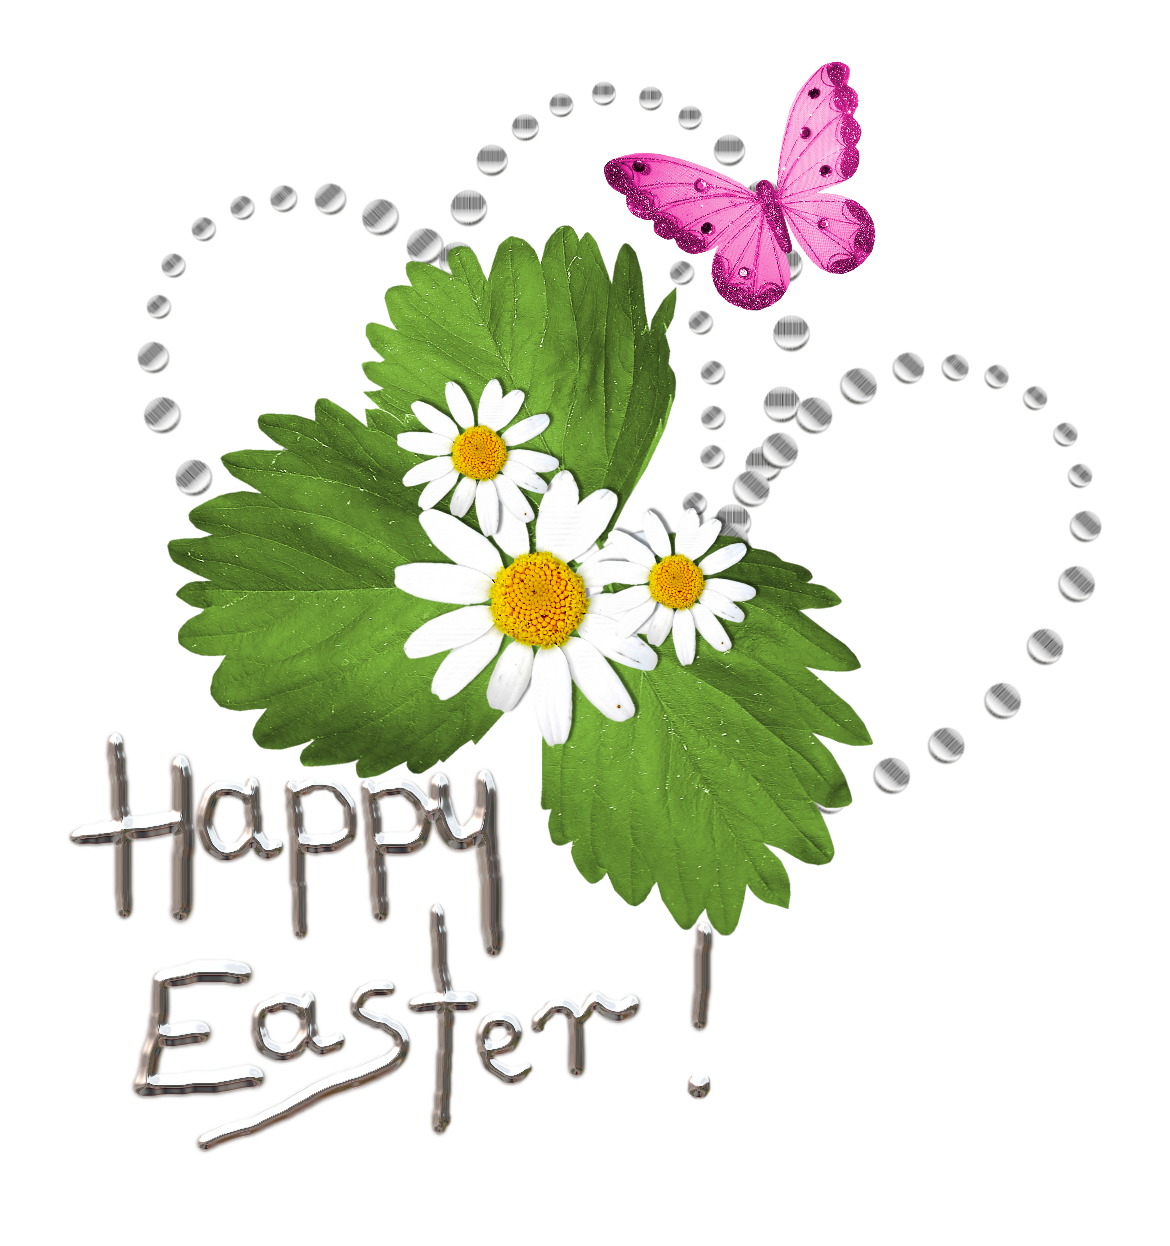 Happy easter clipart religious. Google search clip art